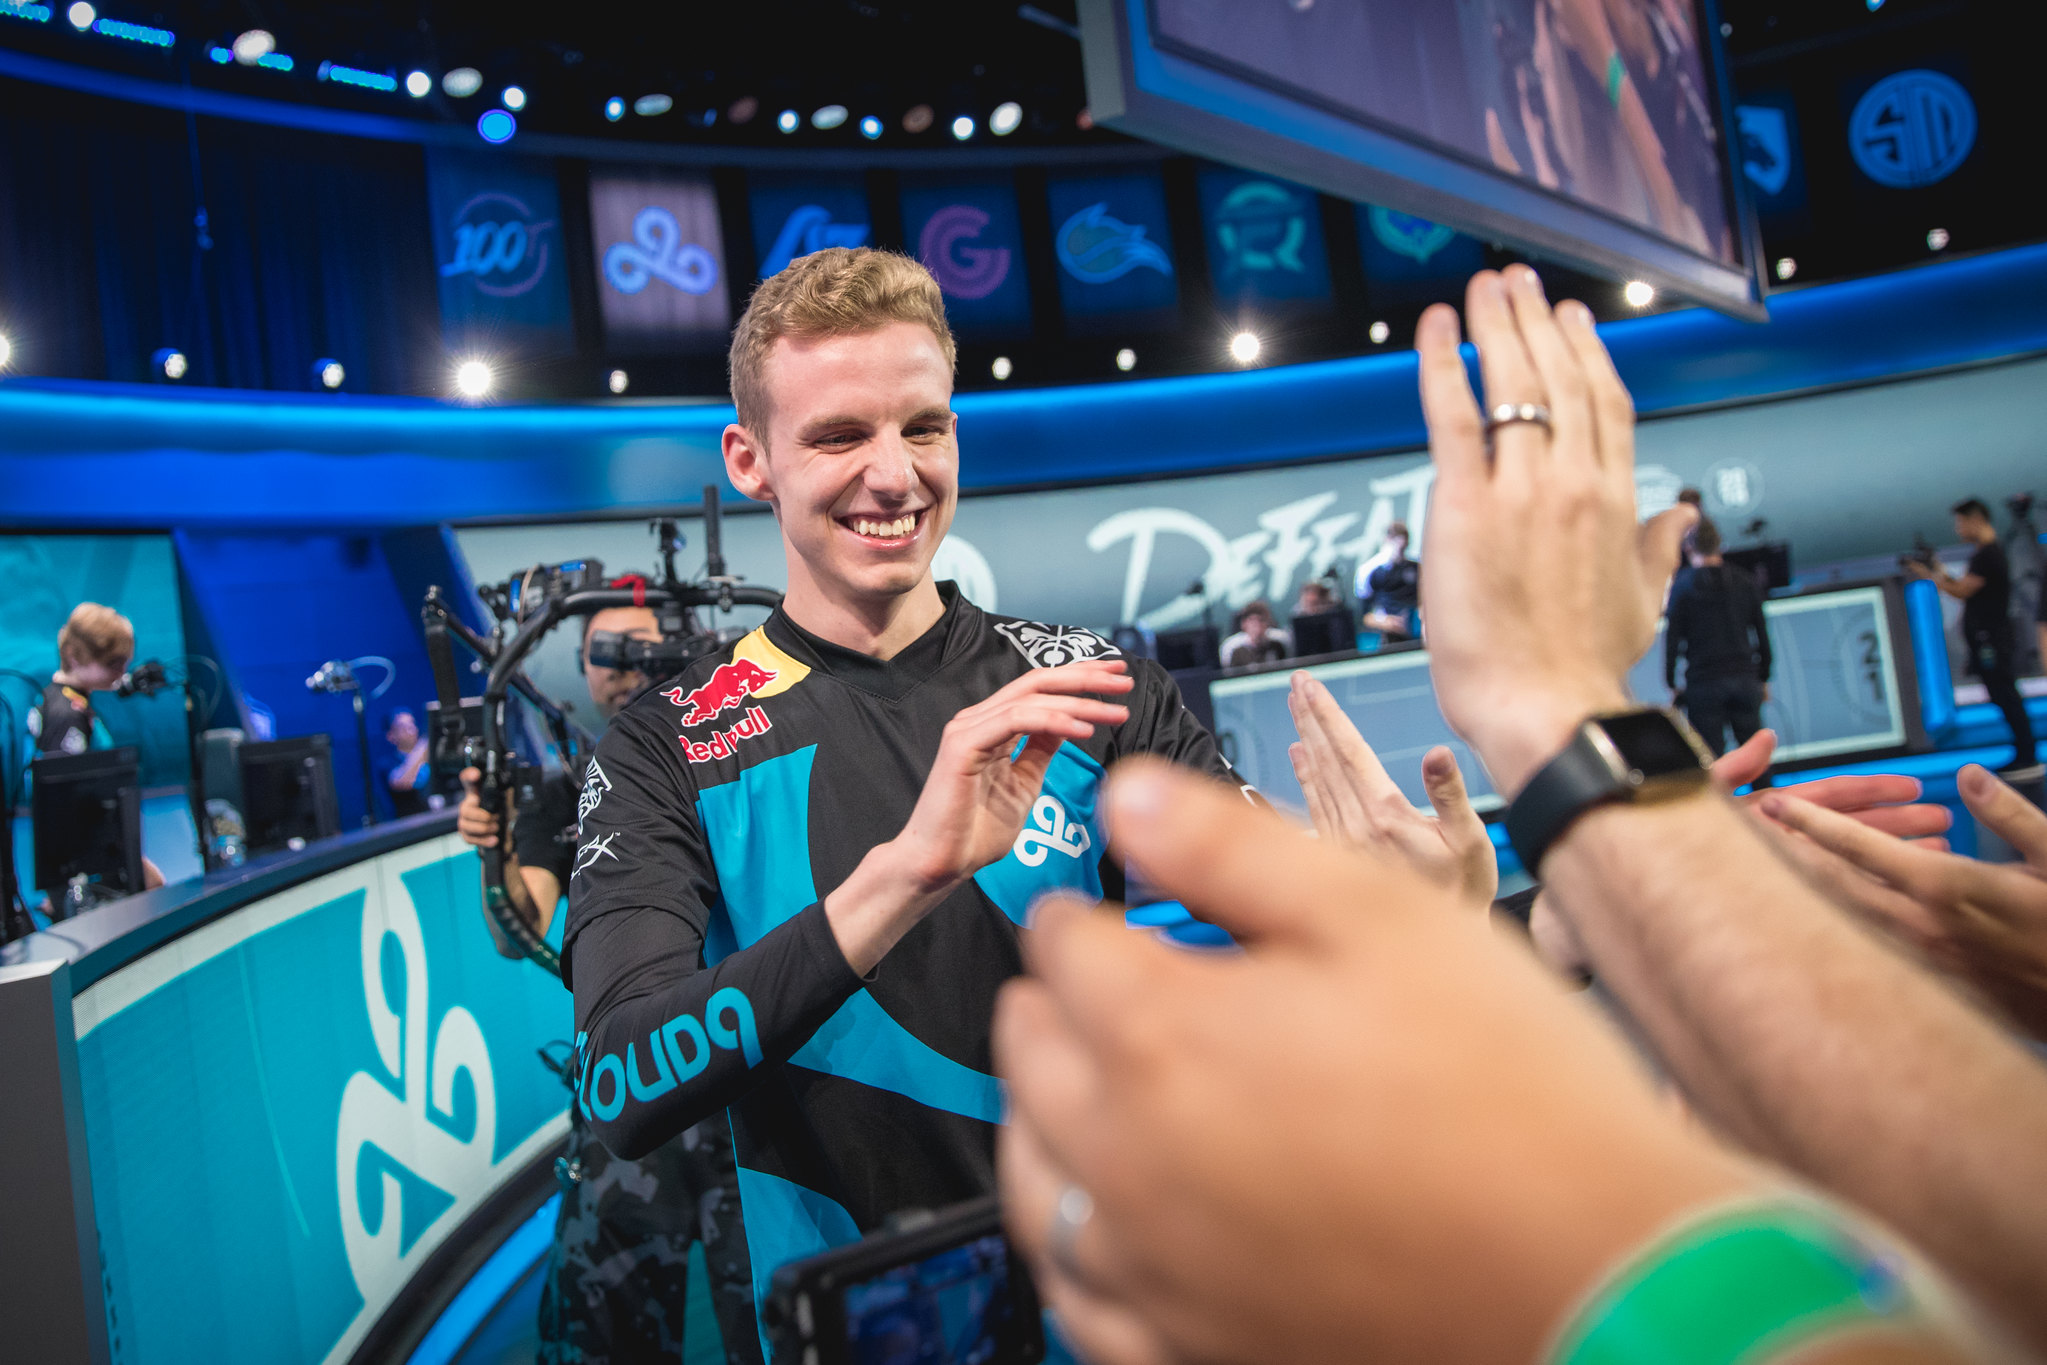 Licorice Gave A recent Interview About Cloud9's Growth And Who They Want To Face At Worlds